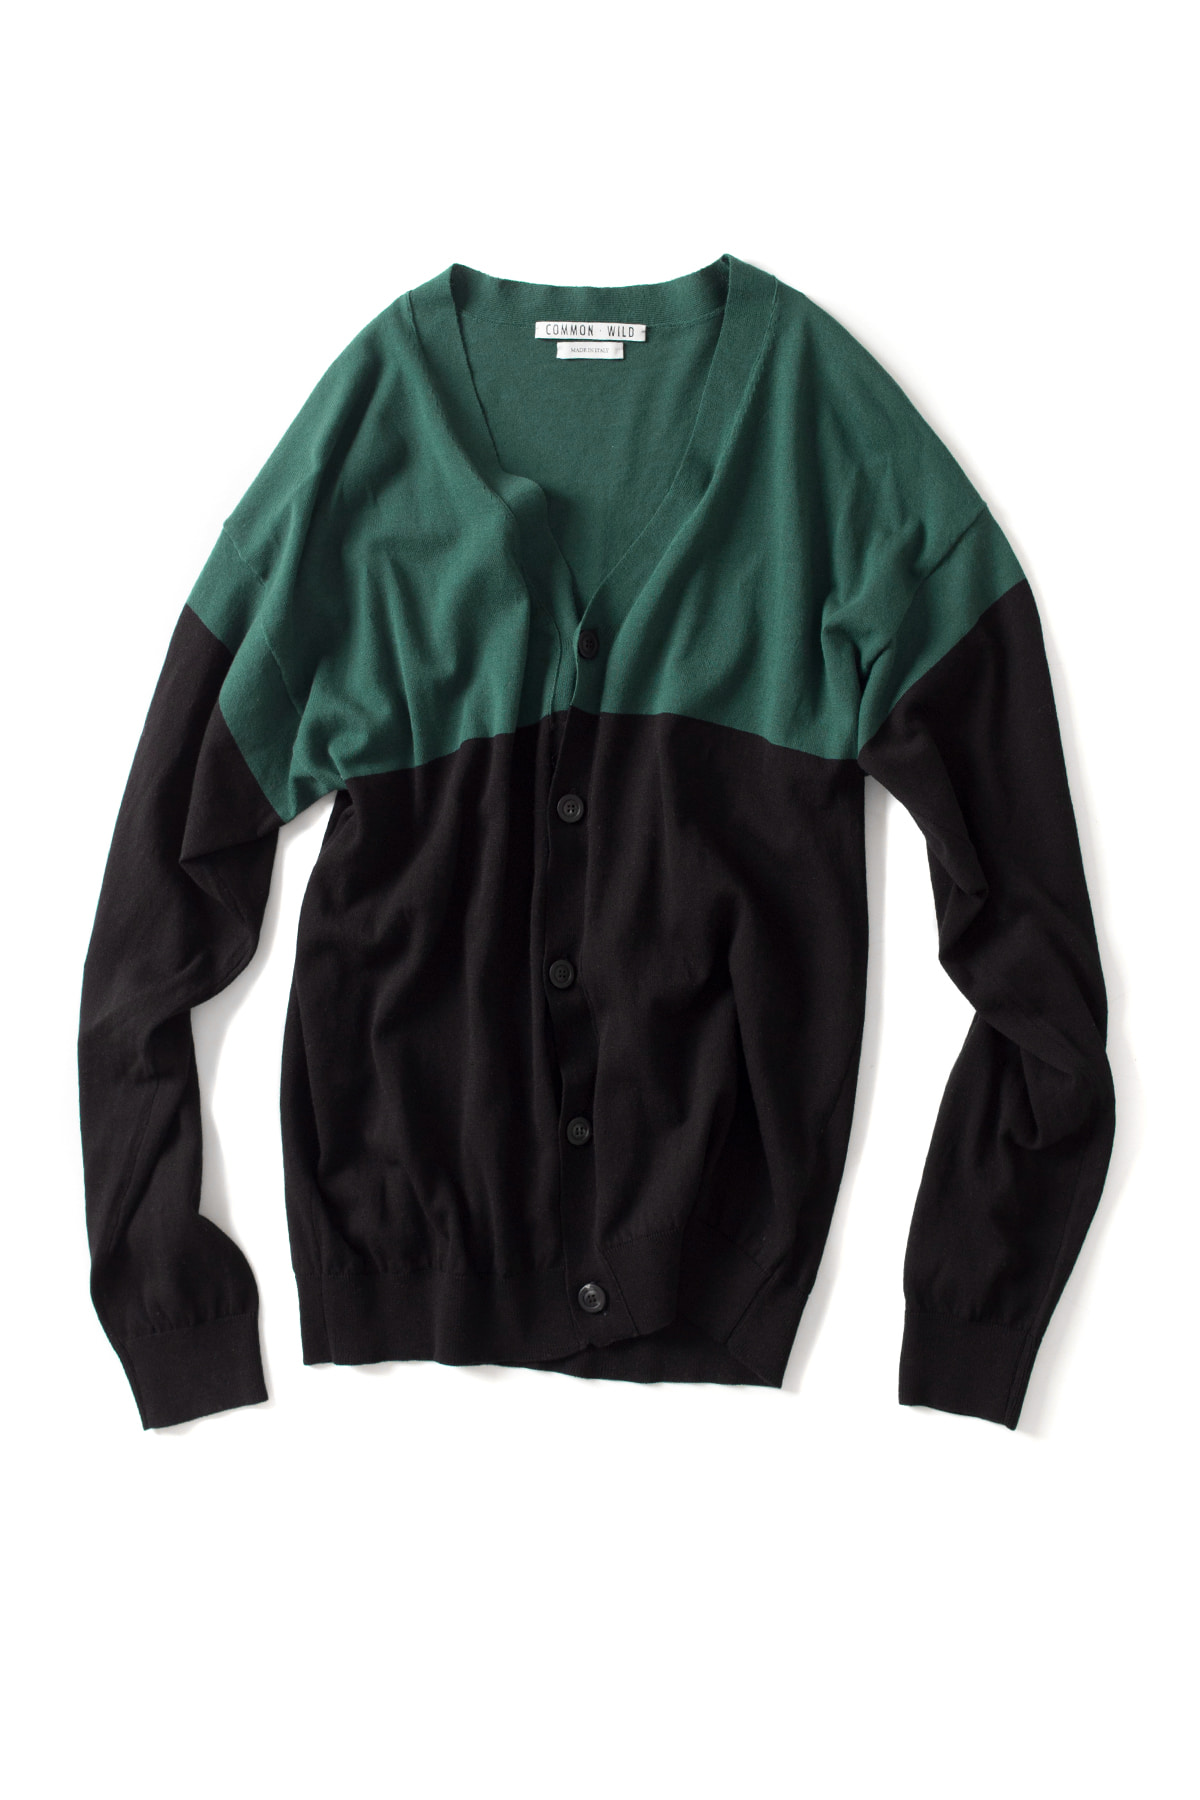 COMMON WILD : Knit Cardigan (Green)